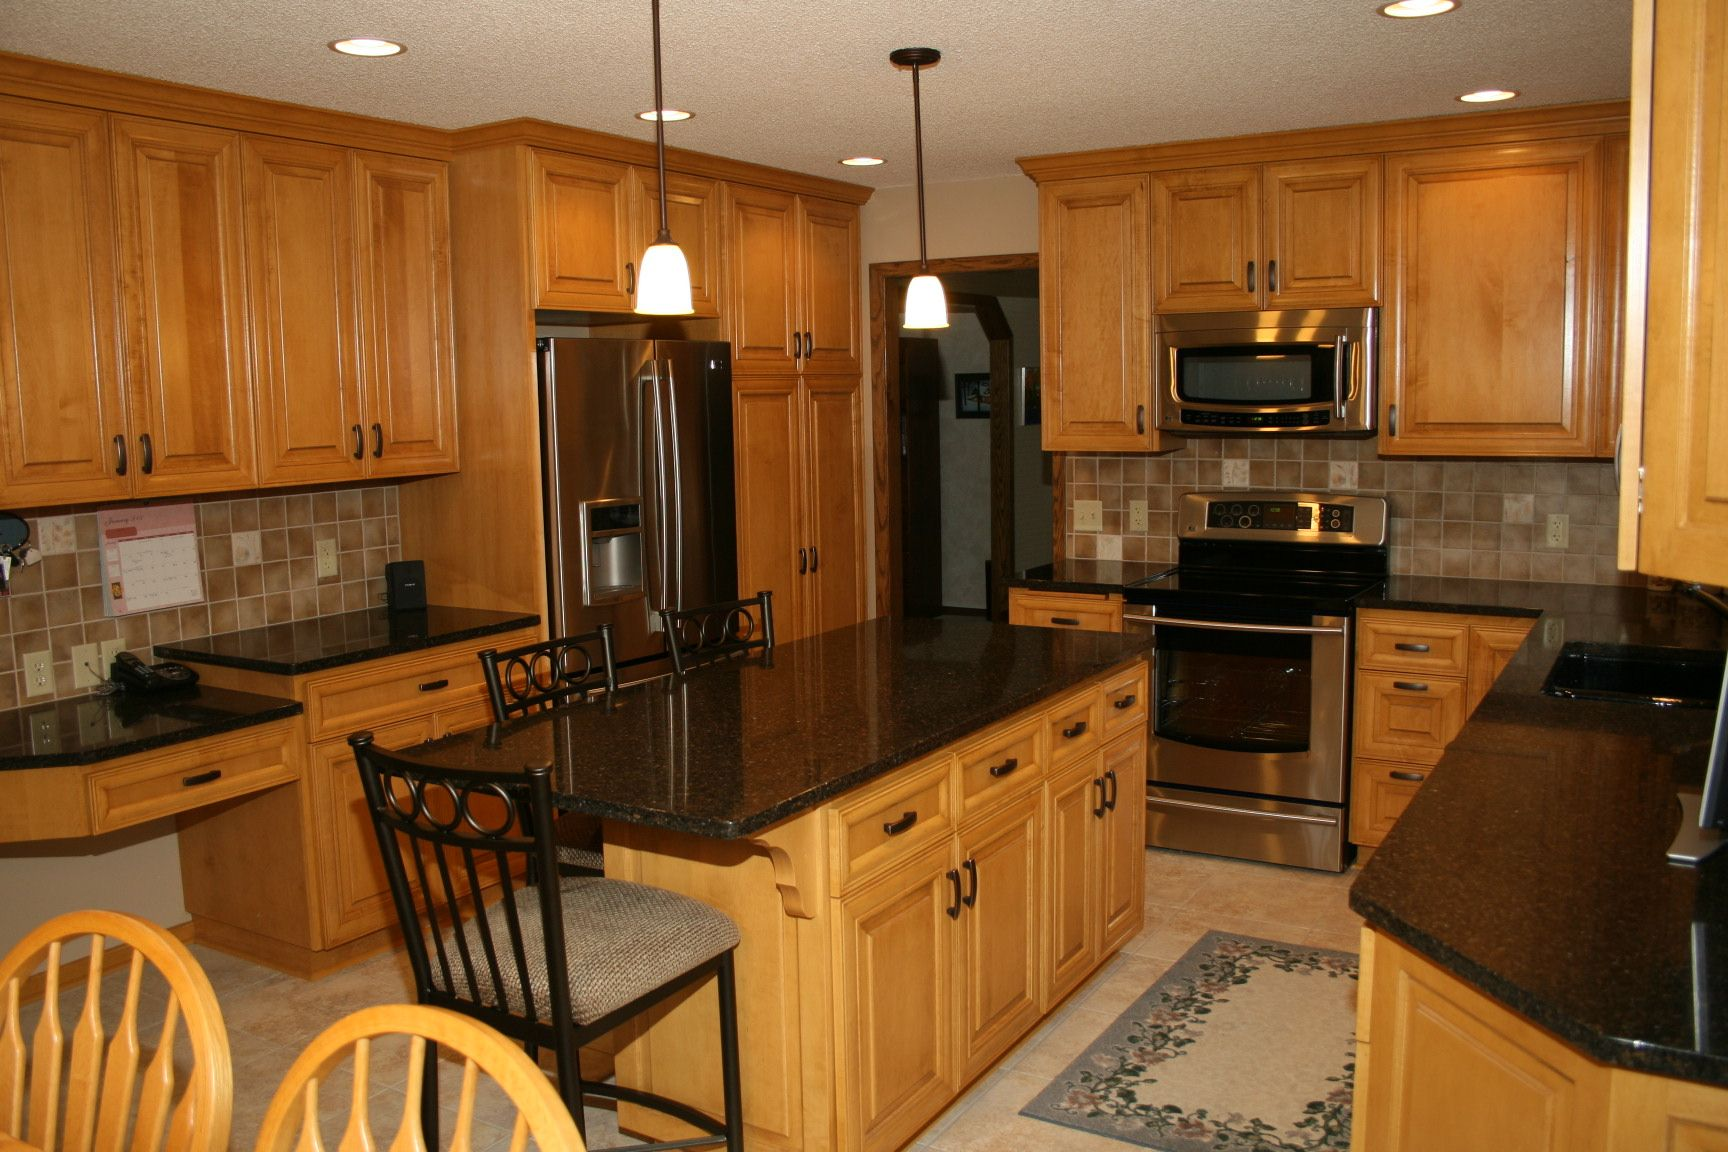 Dark Countertops With Dark Cabinets Dark Counters With Wood Cabinets Kitchen Countertop